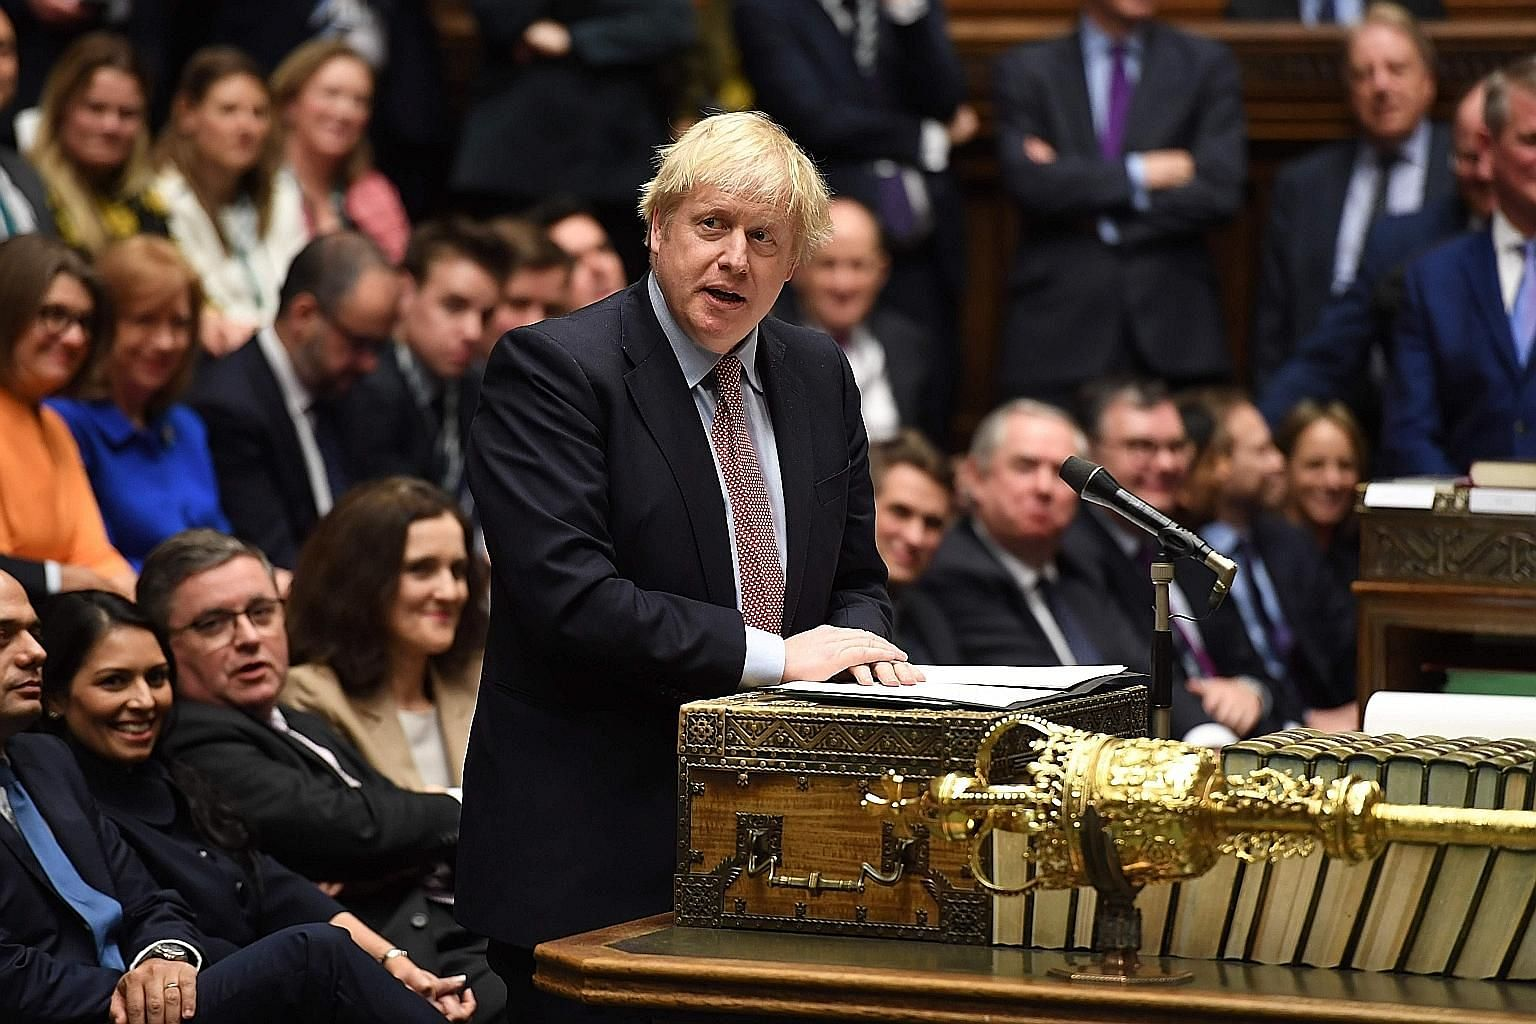 Conservative Prime Minister Boris Johnson is expected to reward working-class voters who deserted the opposition Labour Party by boosting health and other welfare spending. PHOTO: AGENCE FRANCE-PRESSE